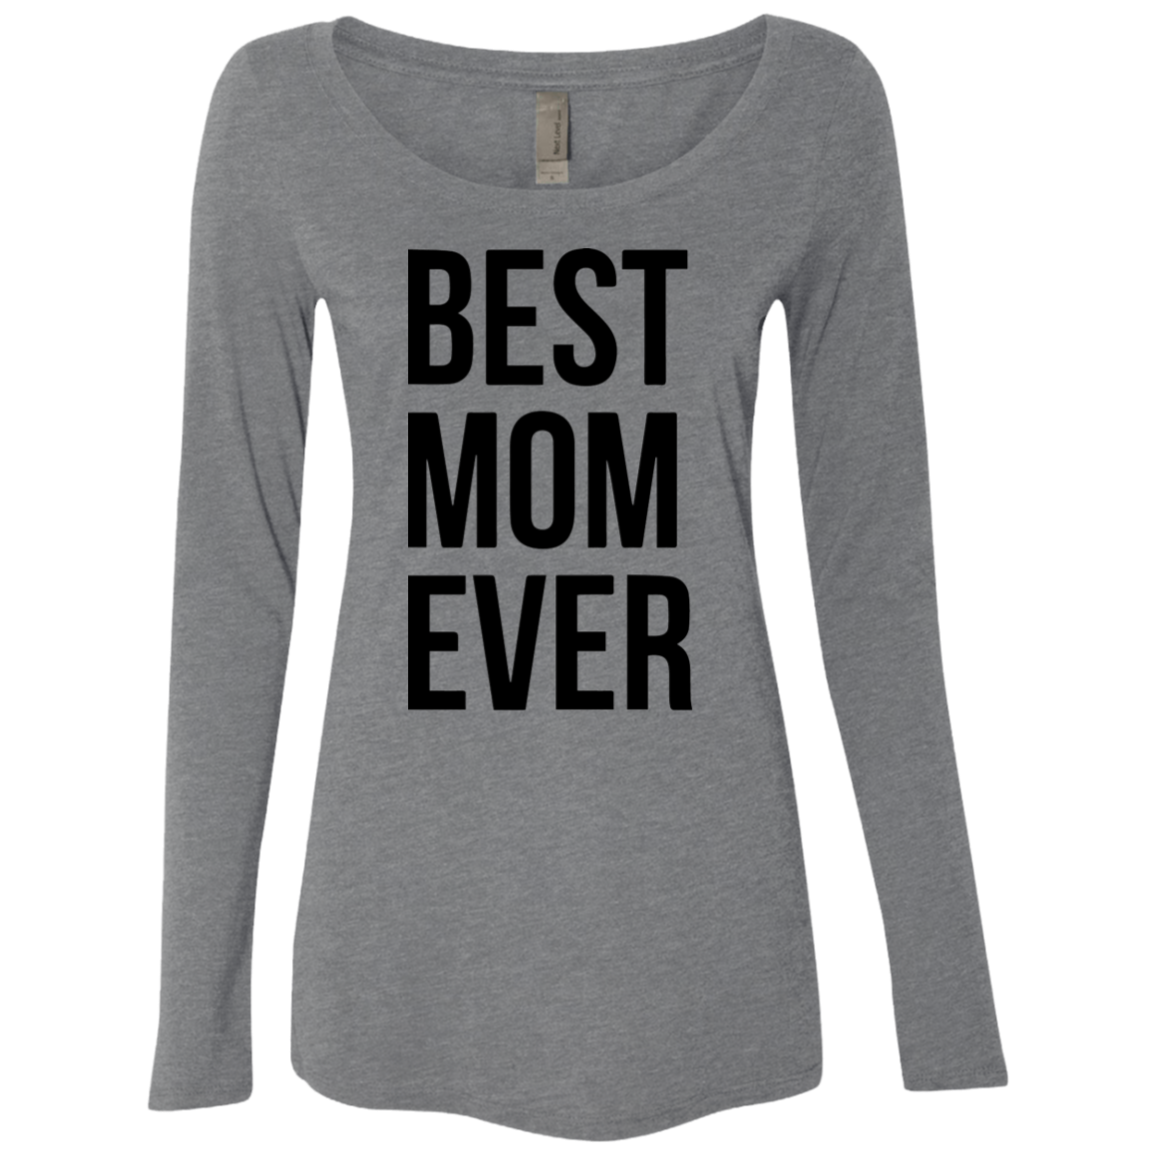 Best Mom Ever Women's Long Sleeve Tee